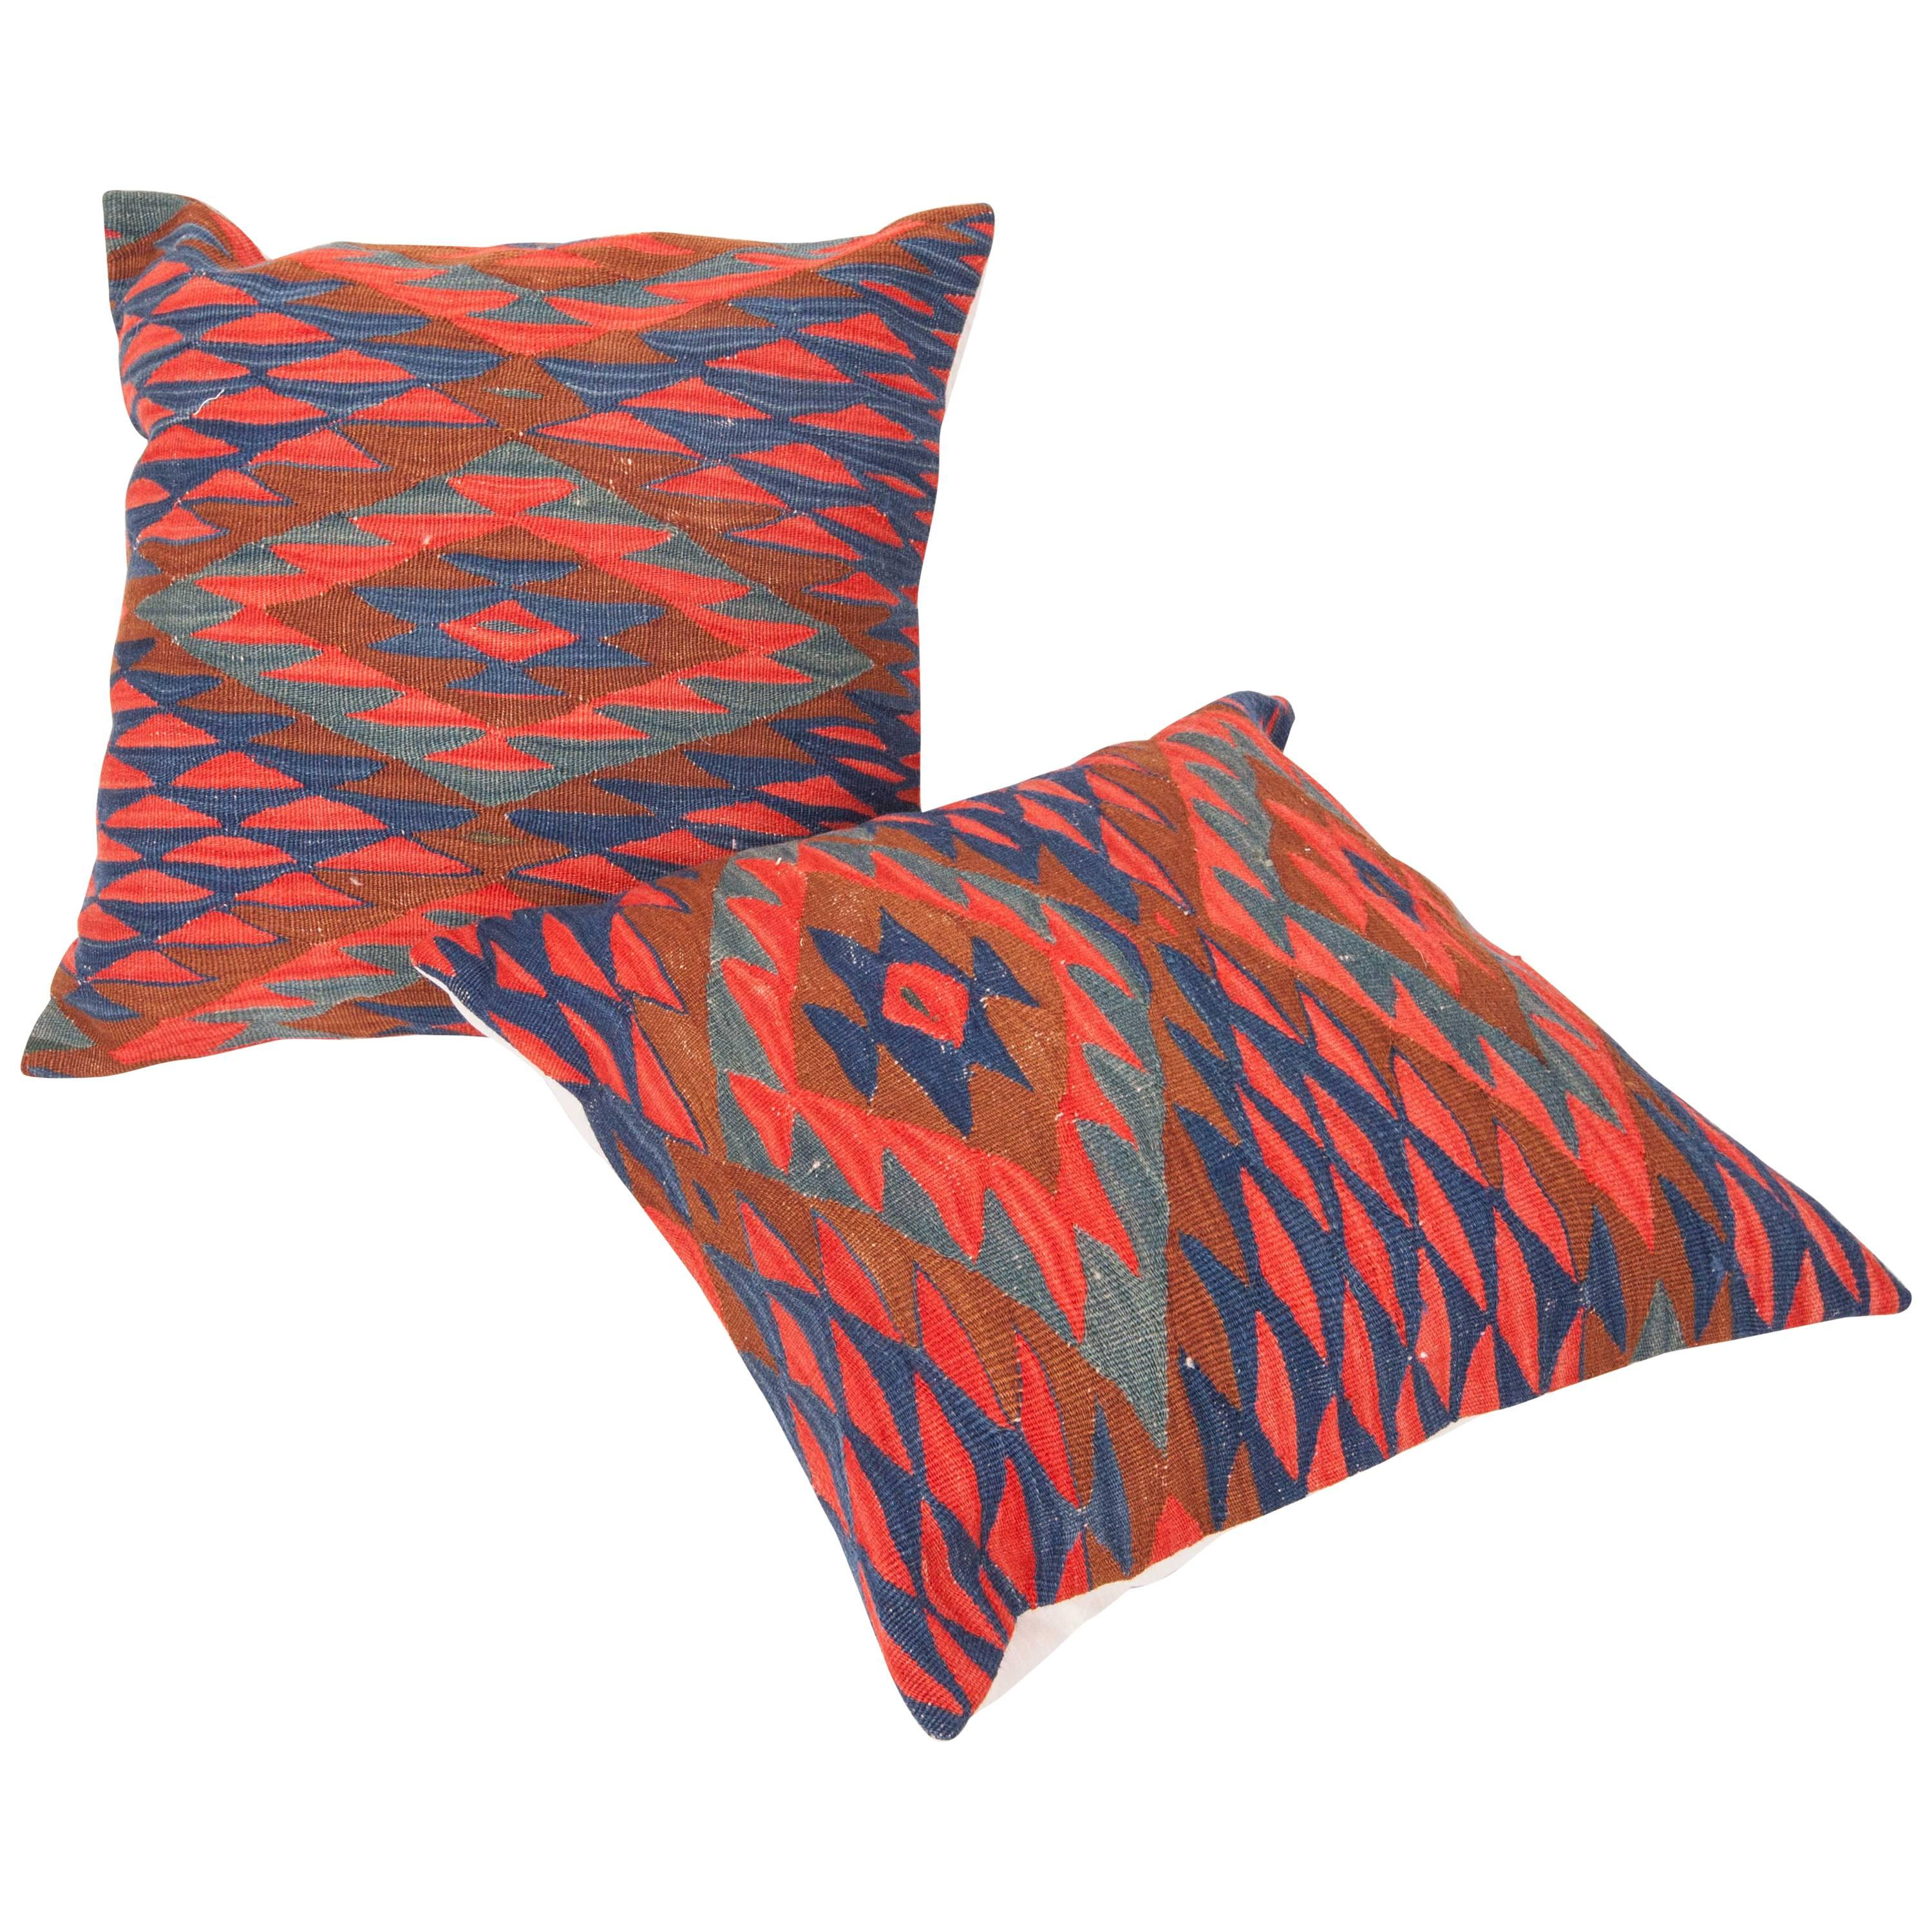 Antique Kilim Pillow Cases Fashioned from Late 19th Century Sharkoy Kilim